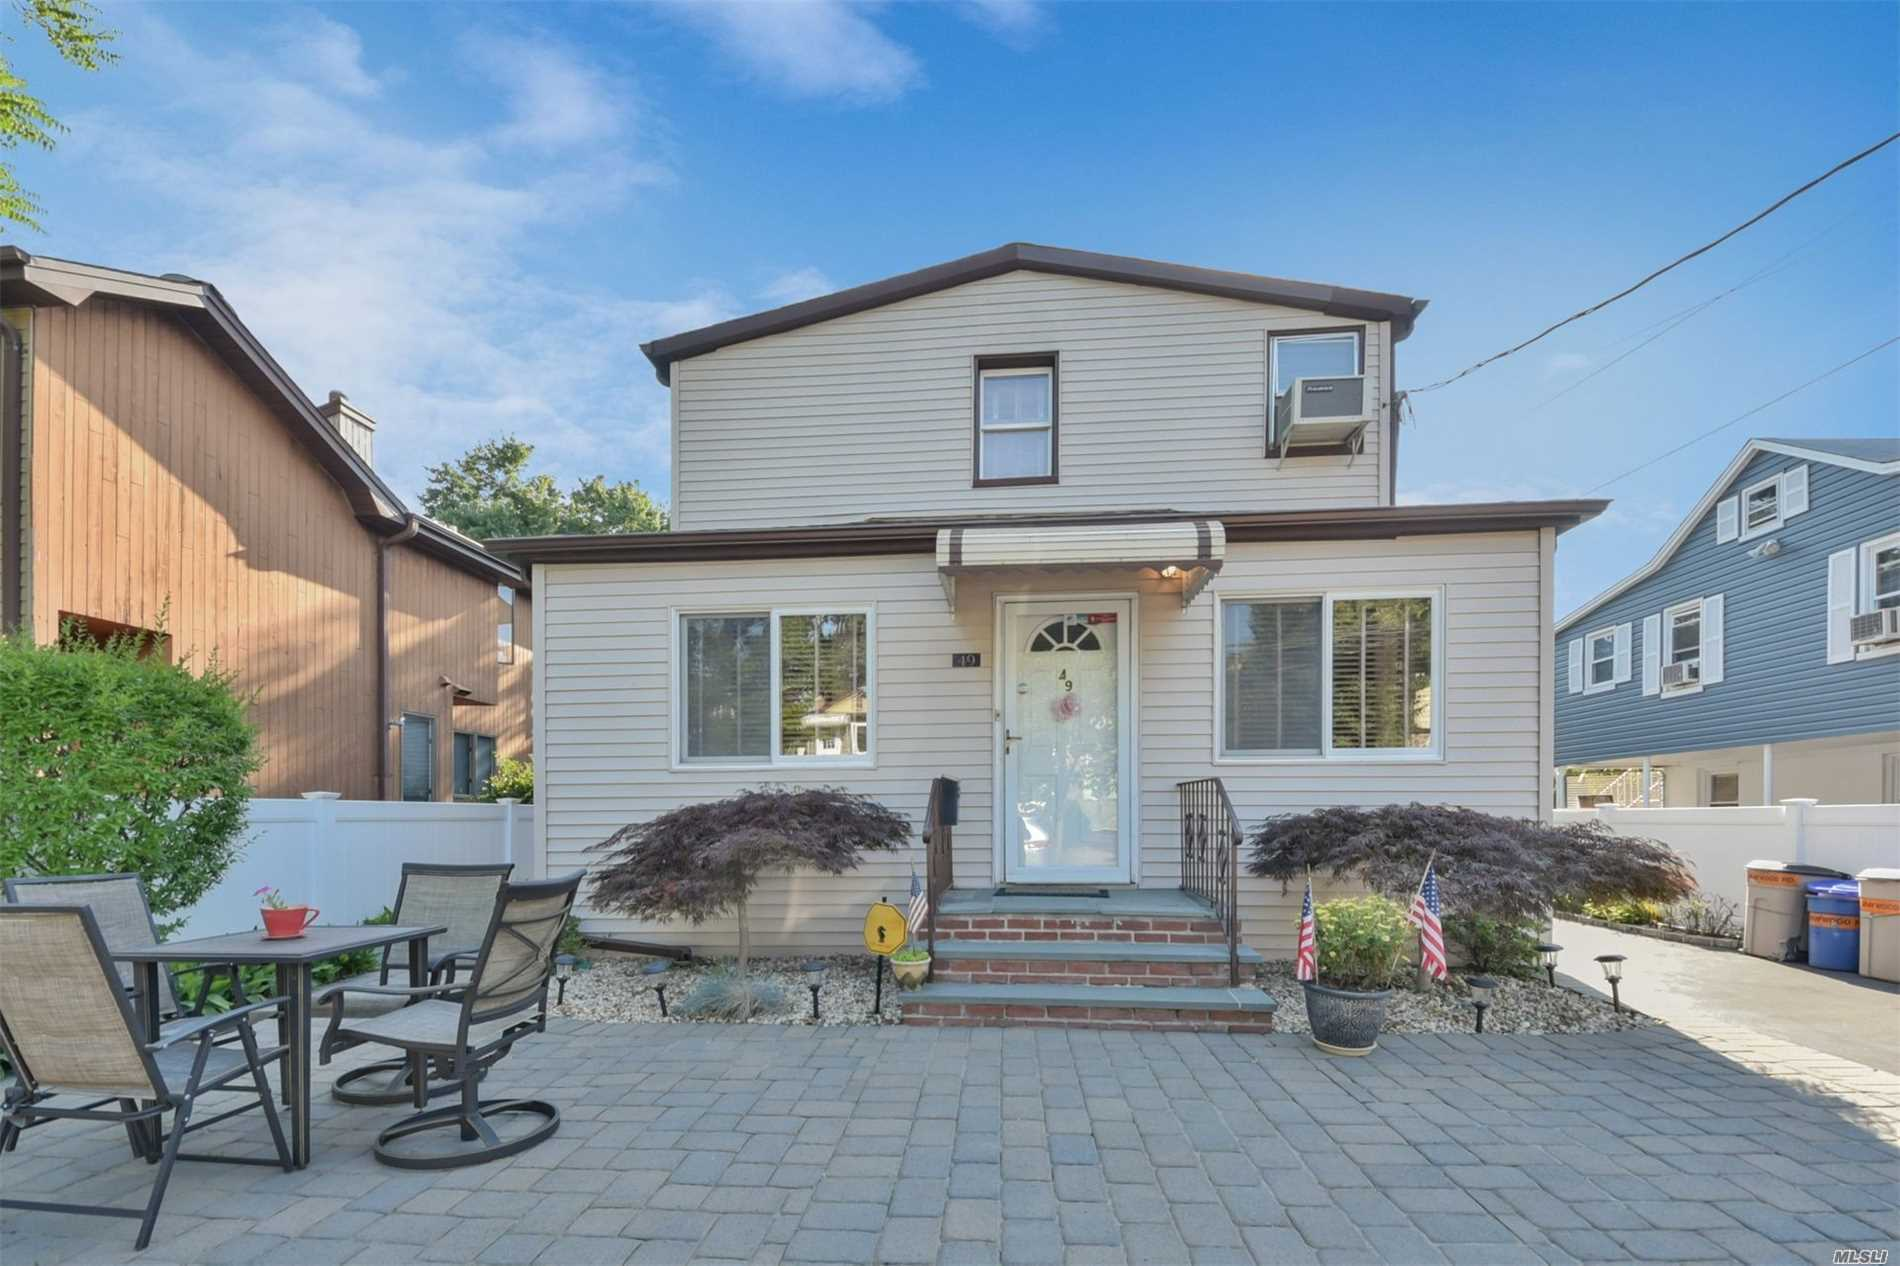 Immaculately Maintained, Ready To Move In, Great Investment Opportunity. . Home Features Updated Kitchens, Baths And Spacious Bedrooms. Beautiful Backyard Affording Tremendous Privacy, With Shed For Storage. Roof Still Under Warranty. Burglar Alarm And Security .Seeing Is Believing. Won't Last.